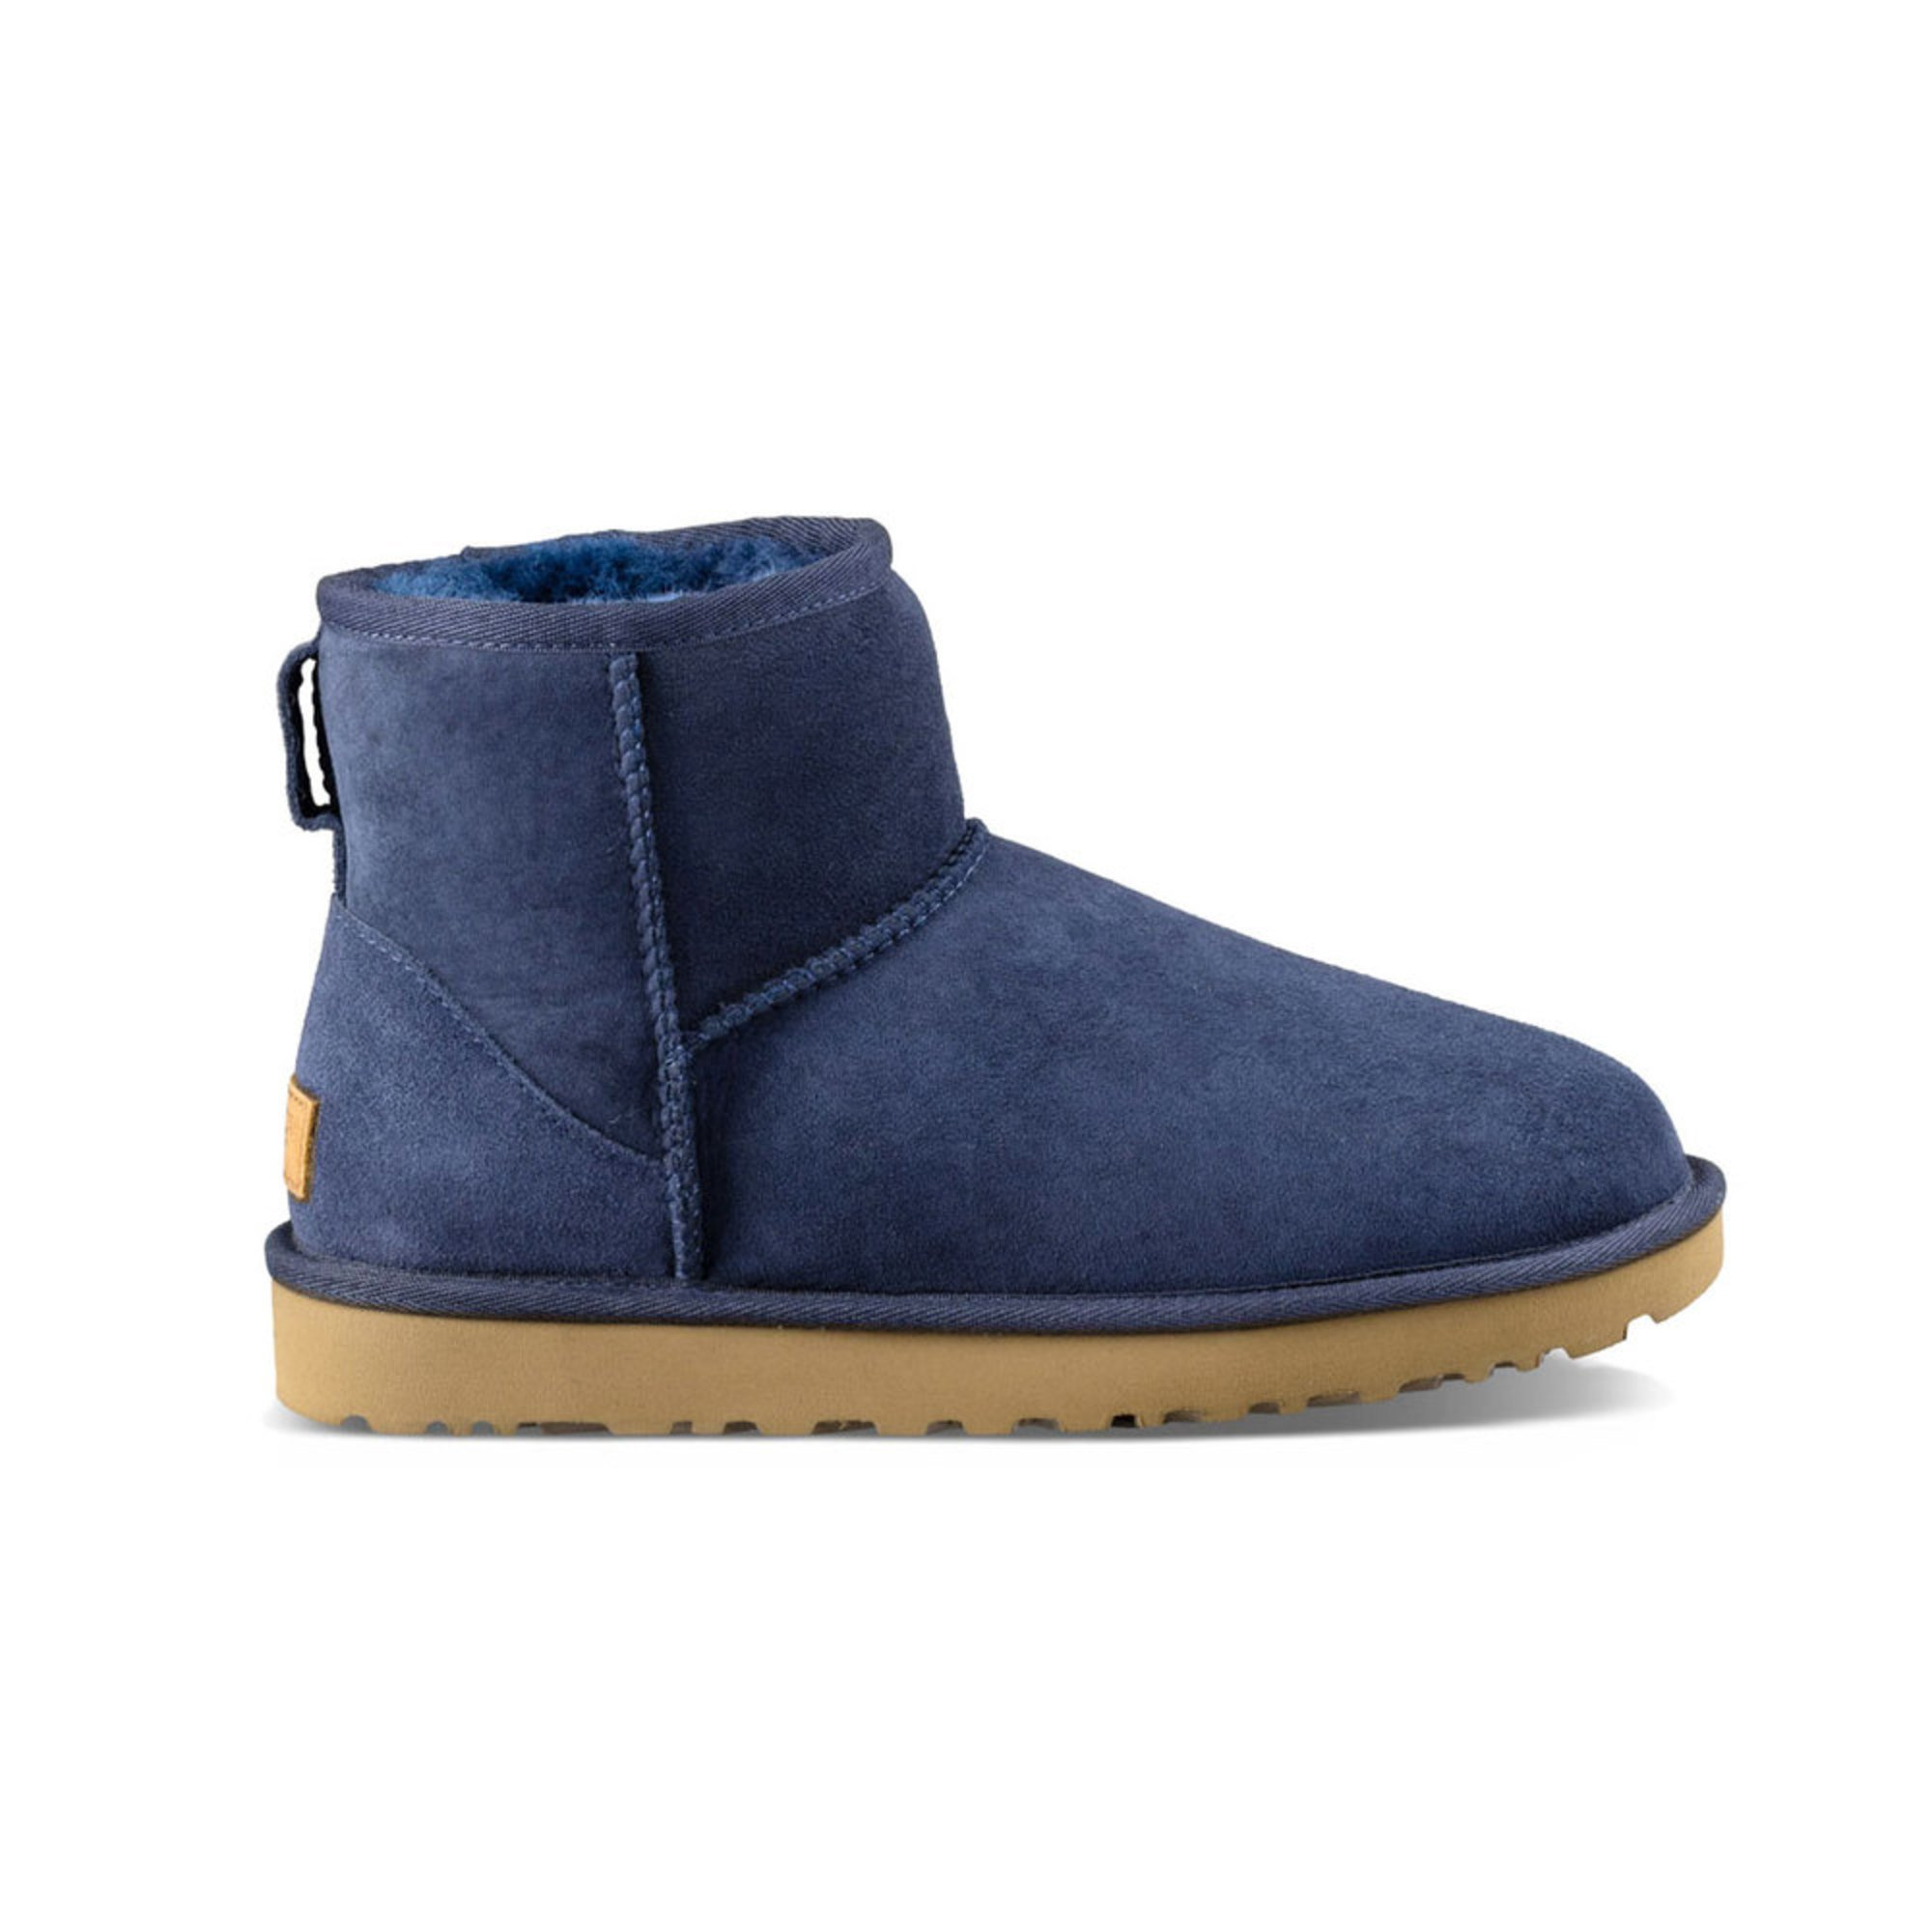 UGG. UGG Classic Mini II Women's Casual Boot Navy